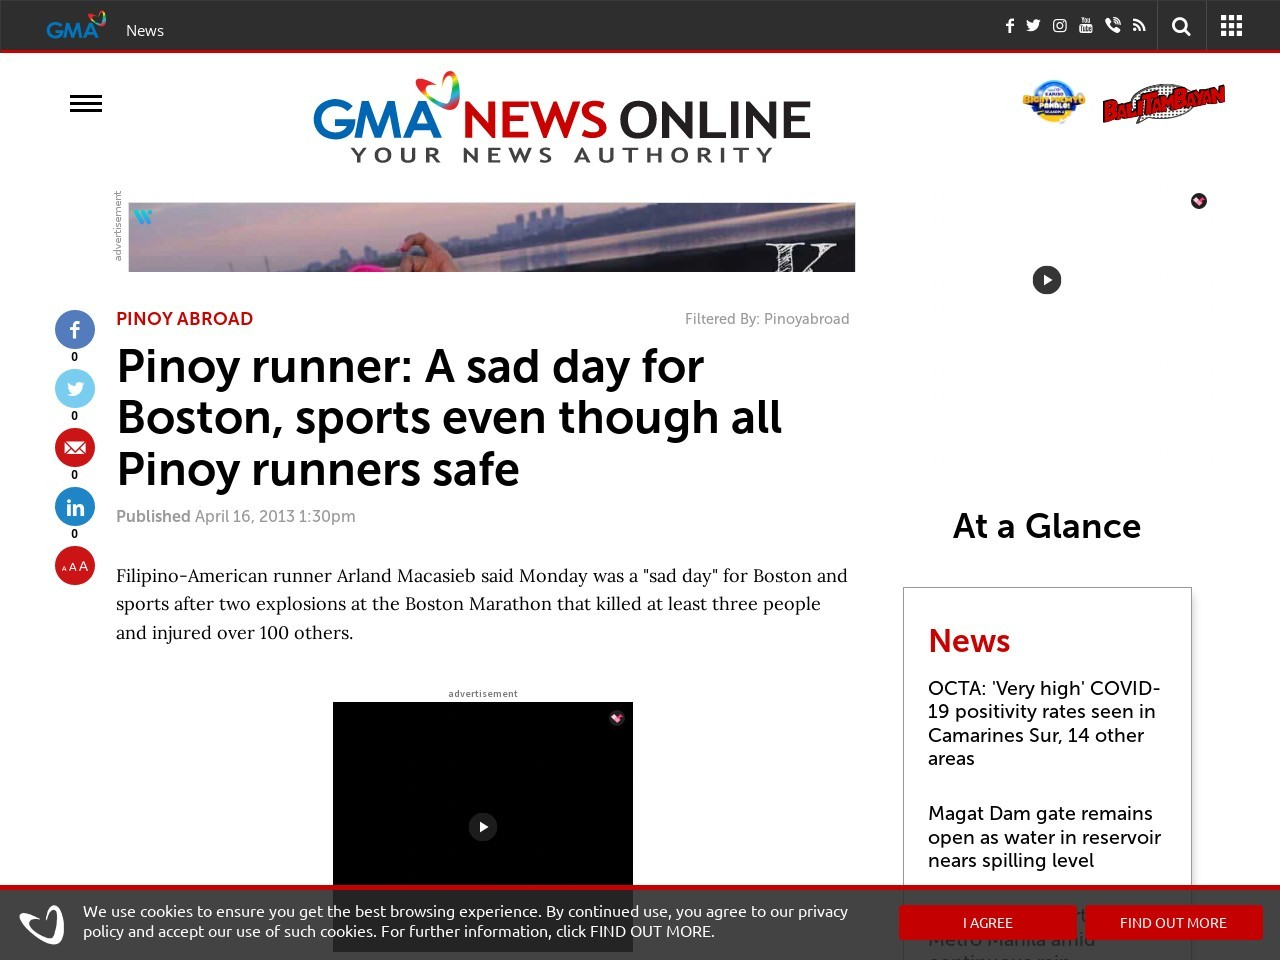 Pinoy runner: A sad day for Boston, sports even though all Pinoy runners safe